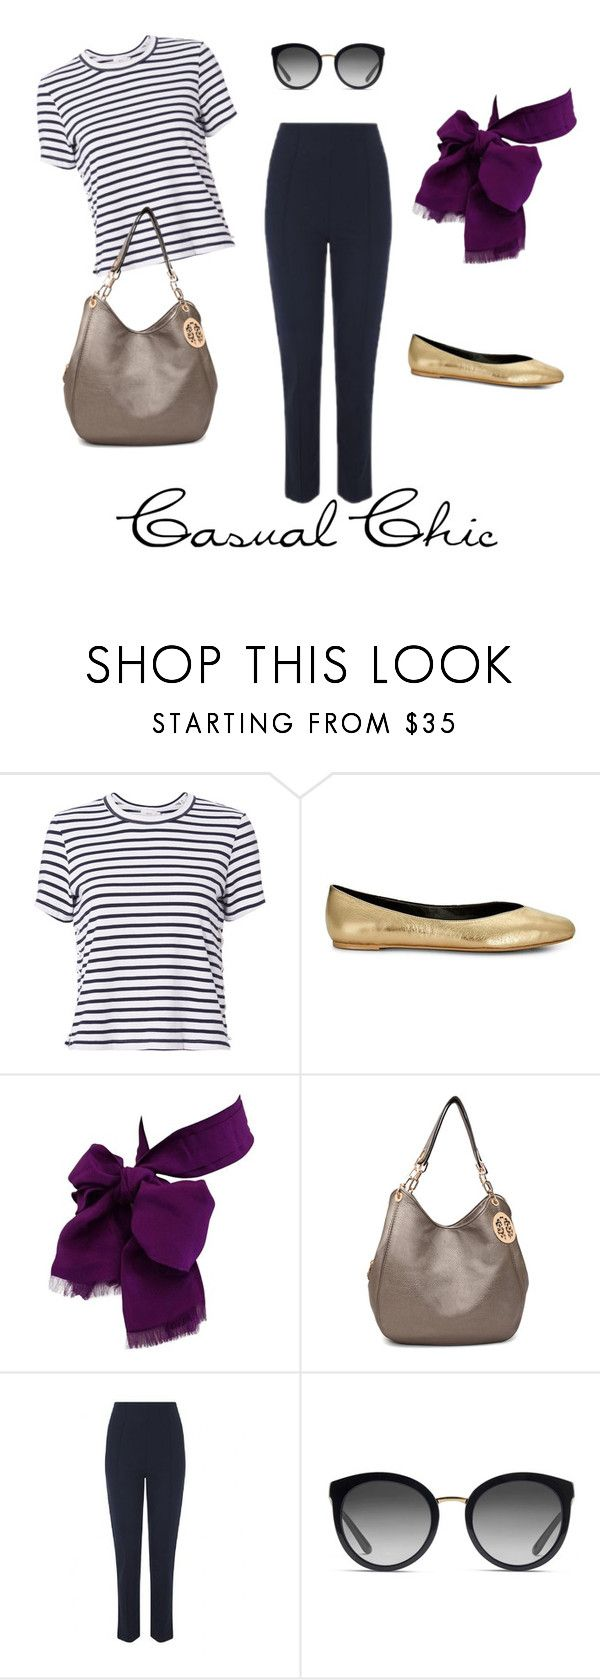 """""""Casual Chic"""" by lesleyhudson on Polyvore featuring A.L.C., Rebecca Minkoff, Lanvin, MKF Collection and Dolce&Gabbana"""